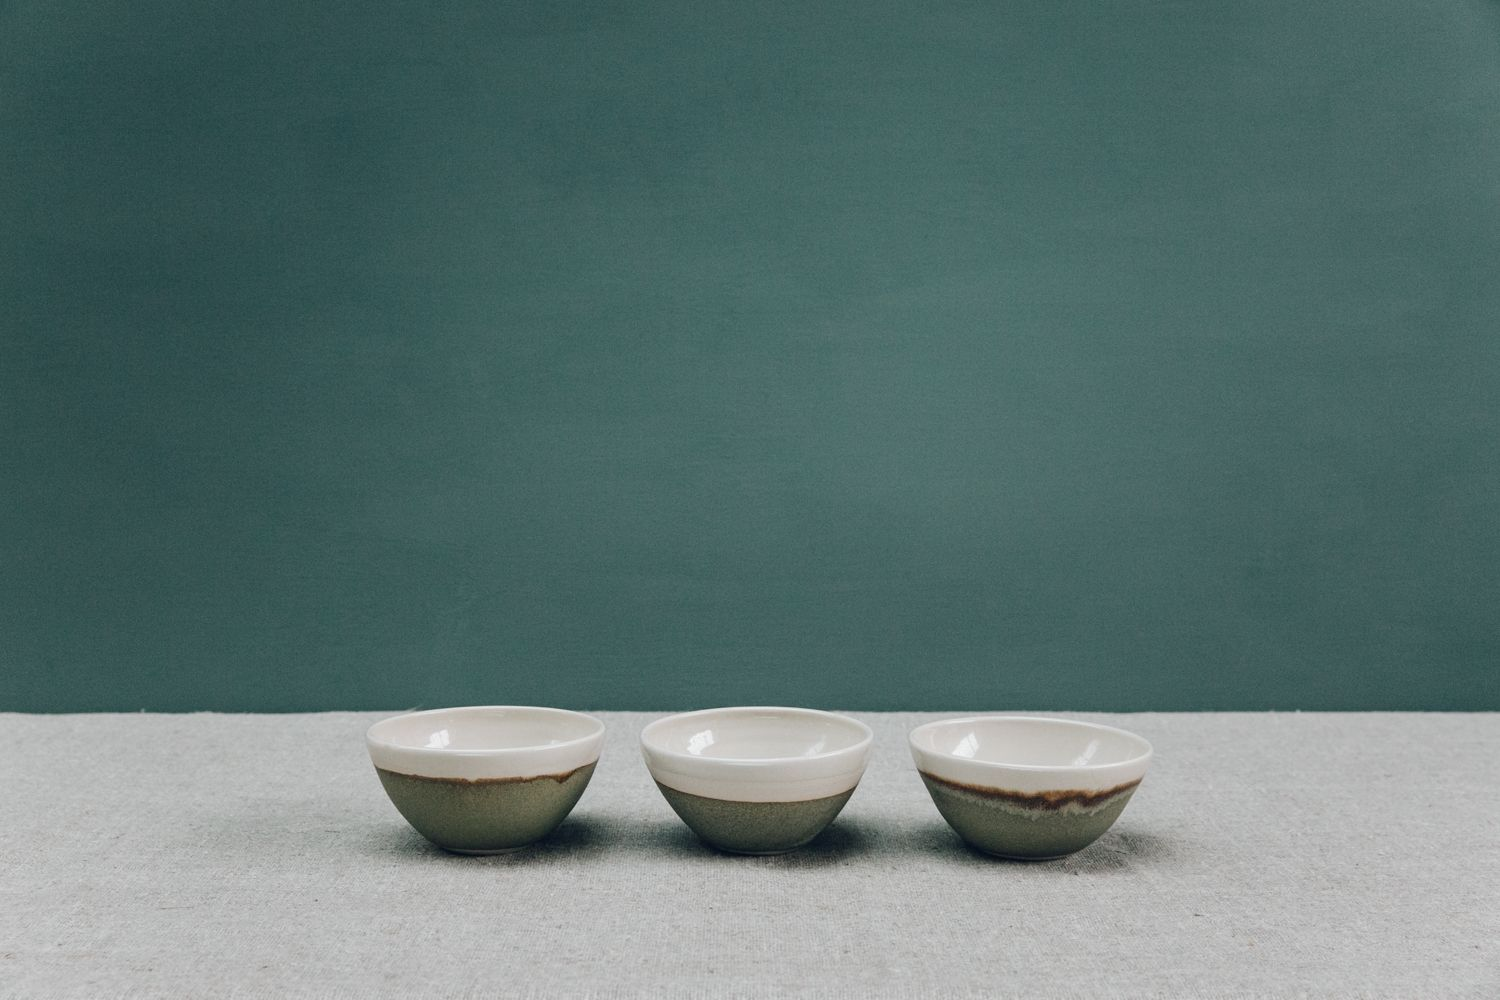 Mariner's Bowls by Pottery West - Catherine and Matt West